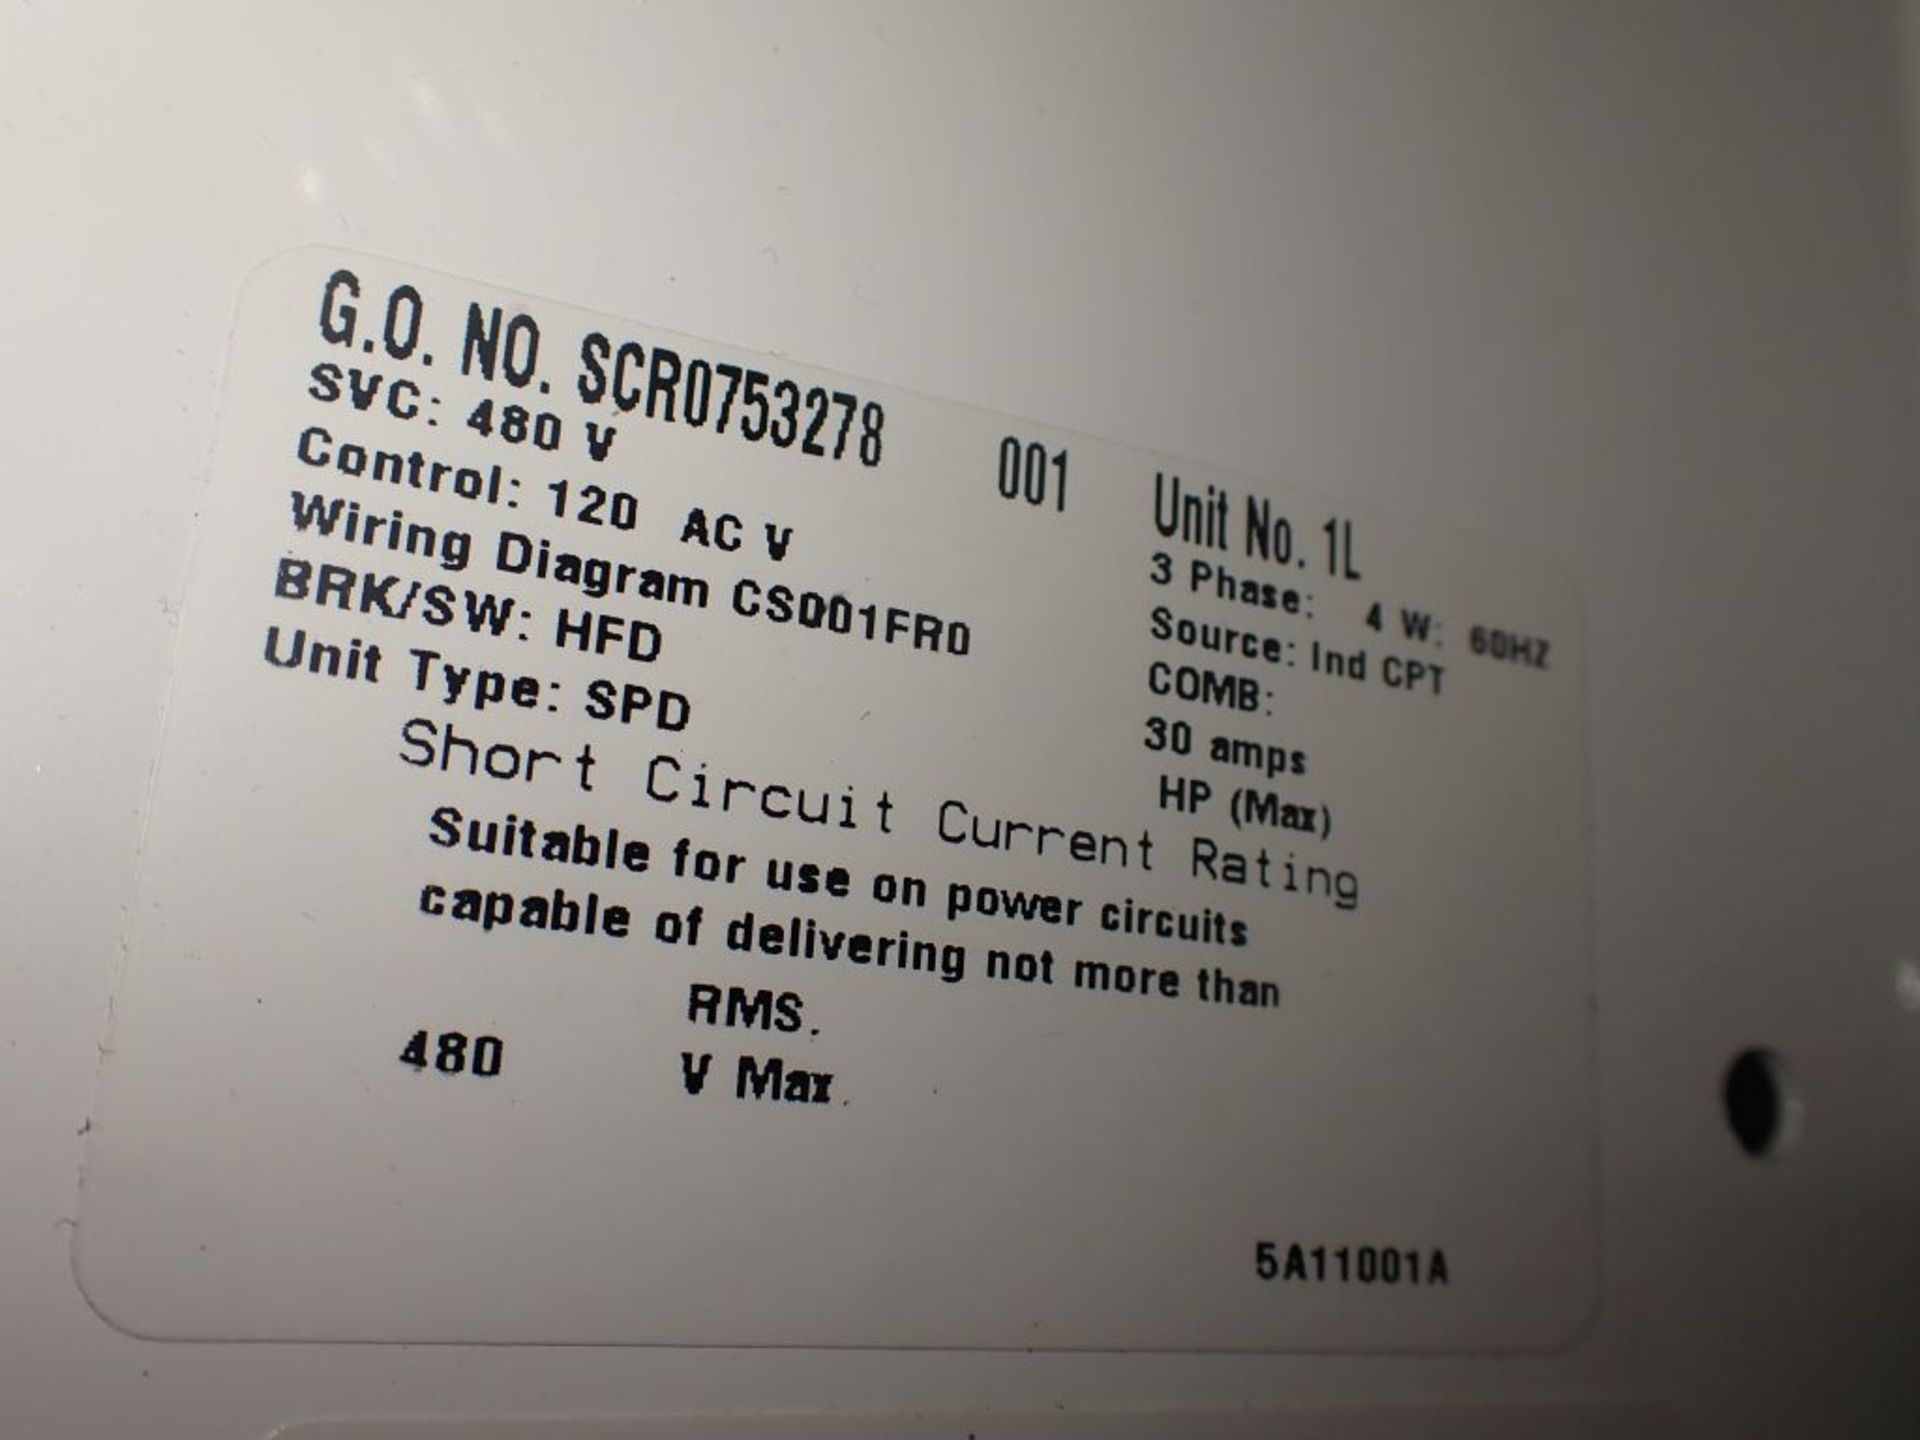 Eaton Freedom Flashgard Motor Control Center | SCR0753278, 480V; (1) INCB-250A, with 400A - Image 30 of 69